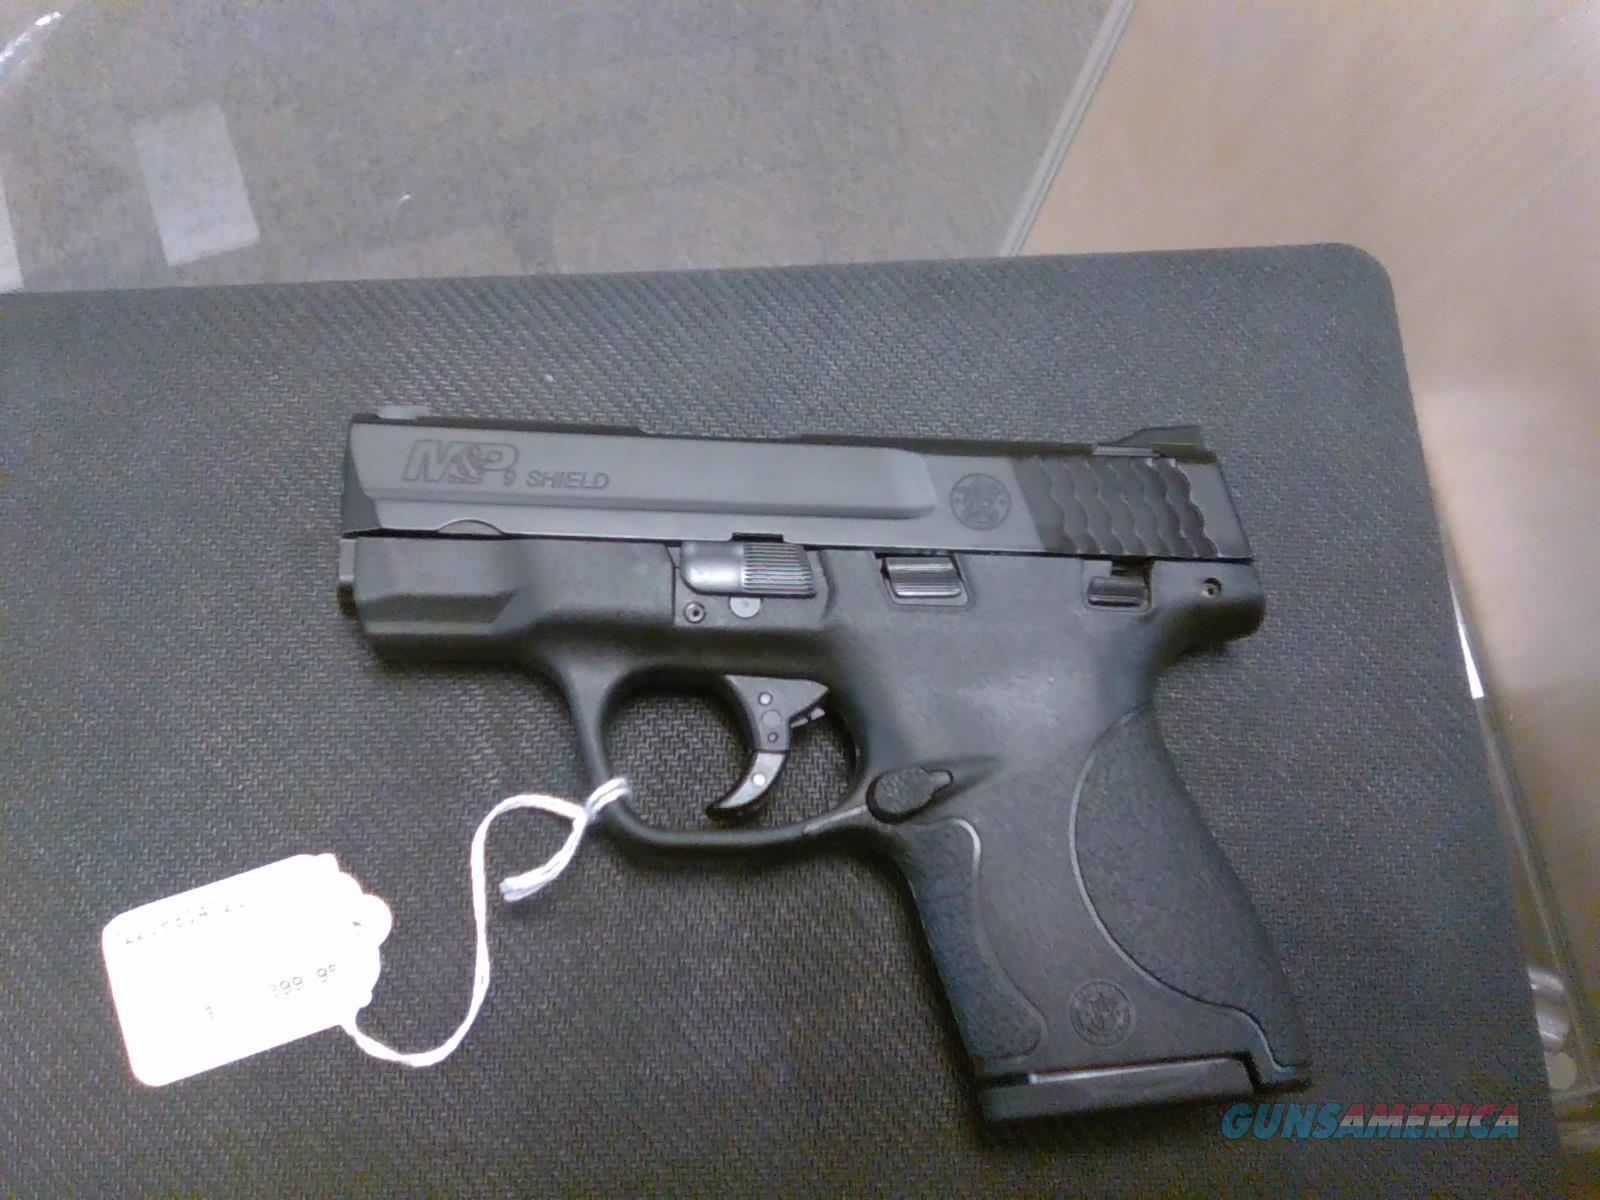 S&W M&P Shield 9mm w/ safety NO CC FEES  Guns > Pistols > Smith & Wesson Pistols - Autos > Shield